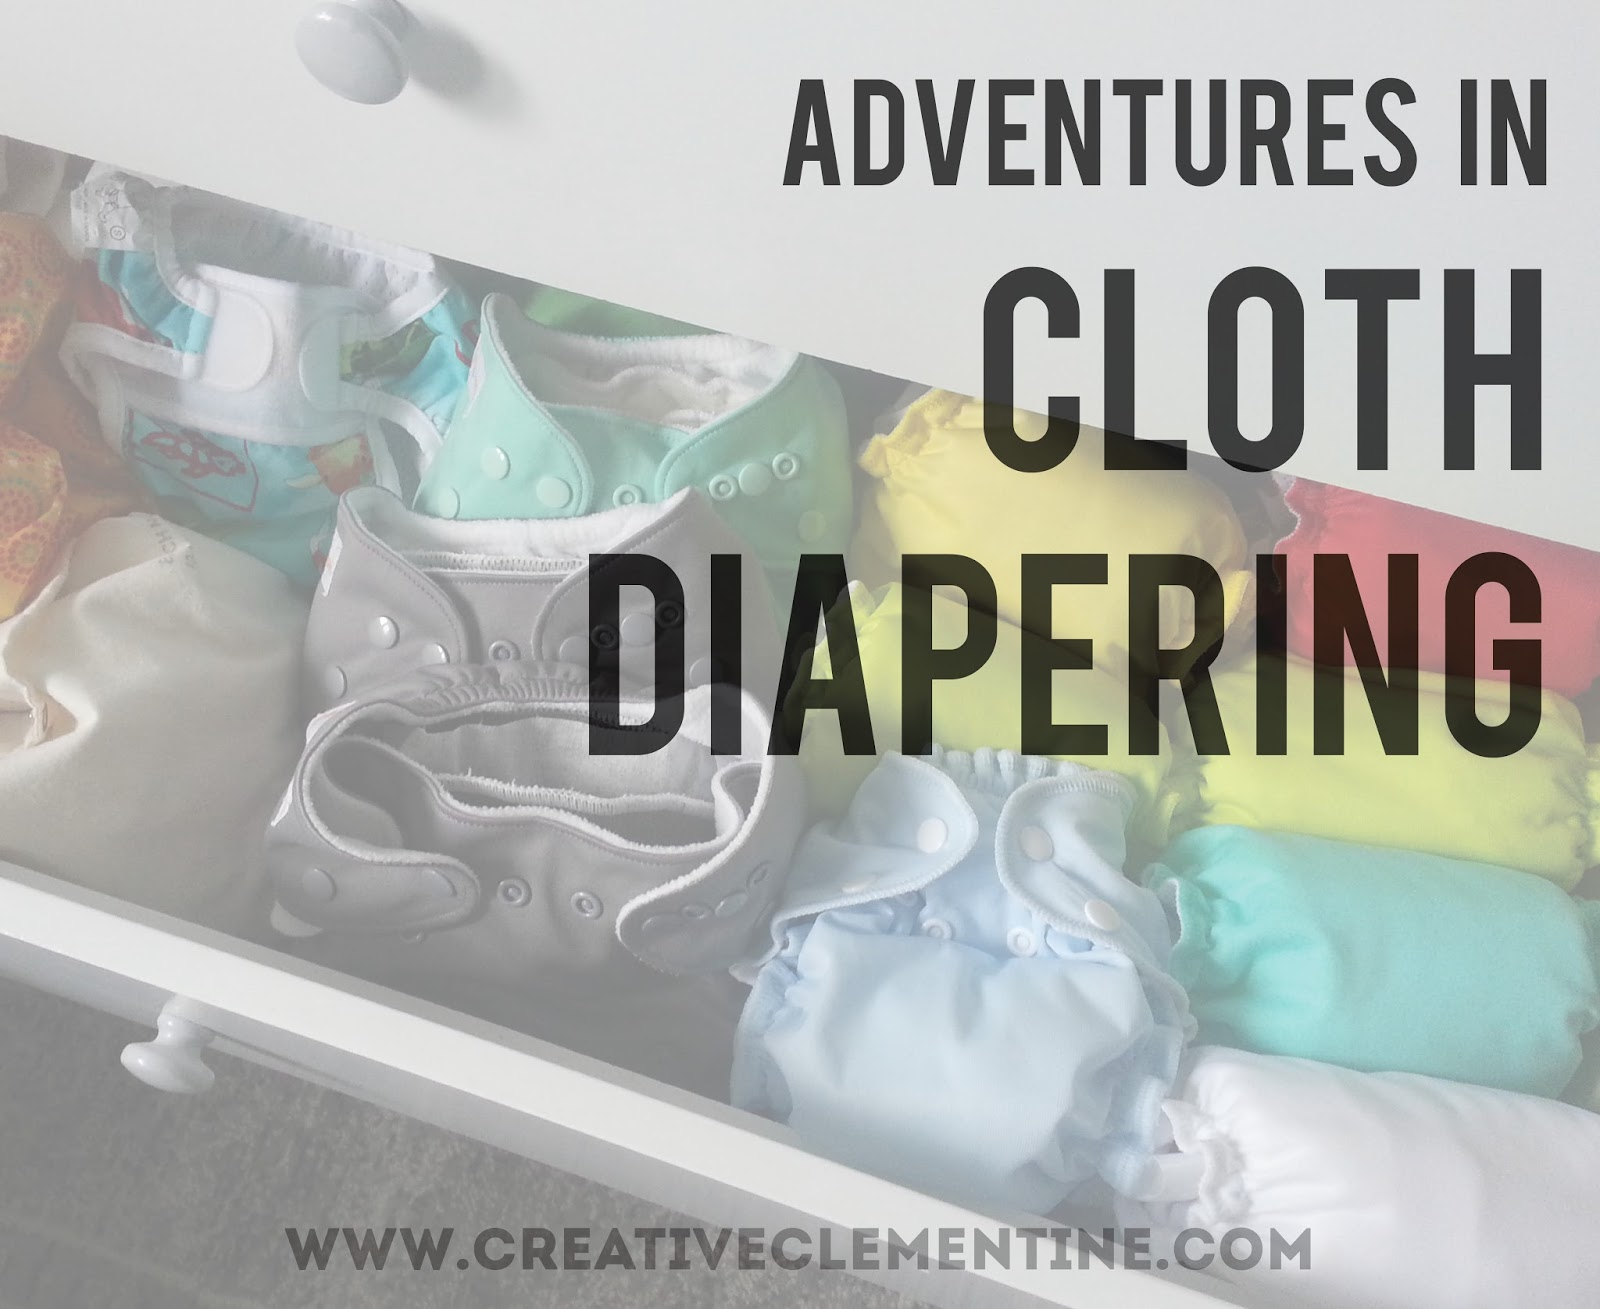 Adventures in cloth diapering: four solutions to the most common roadblocks to choosing cloth diapers.